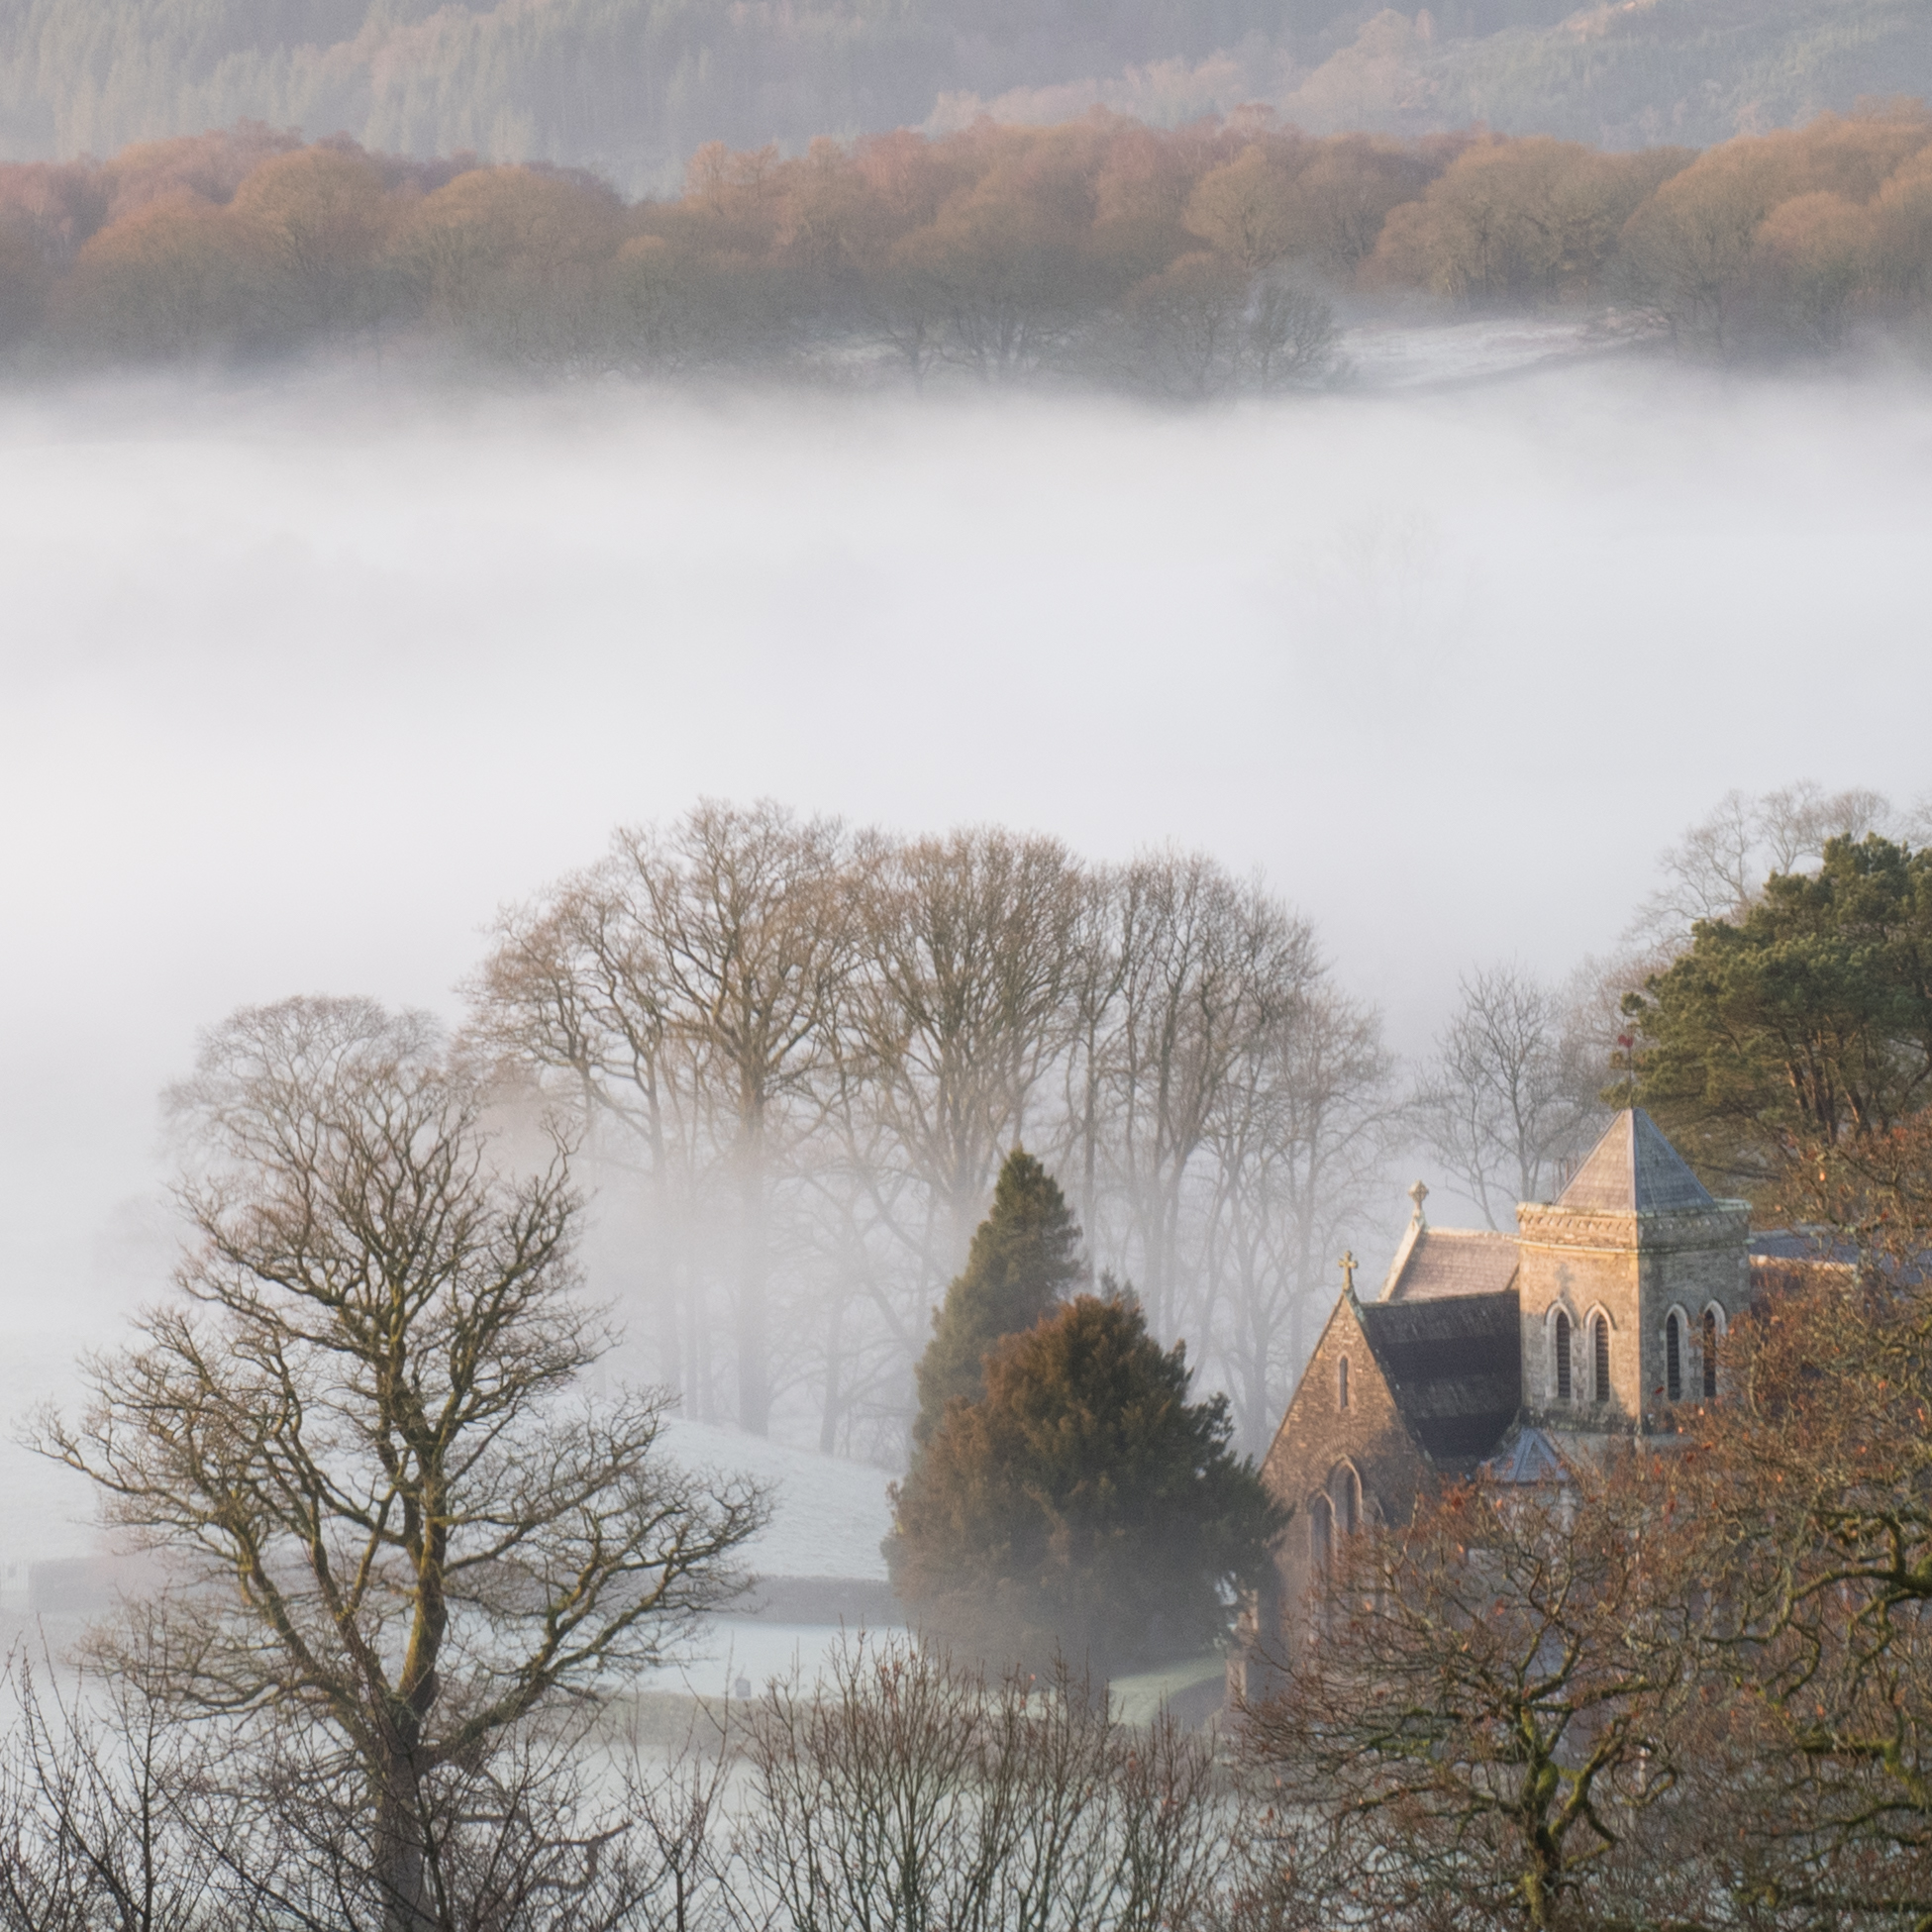 Looking down to St Peters Church, Far Sawrey. December 2018